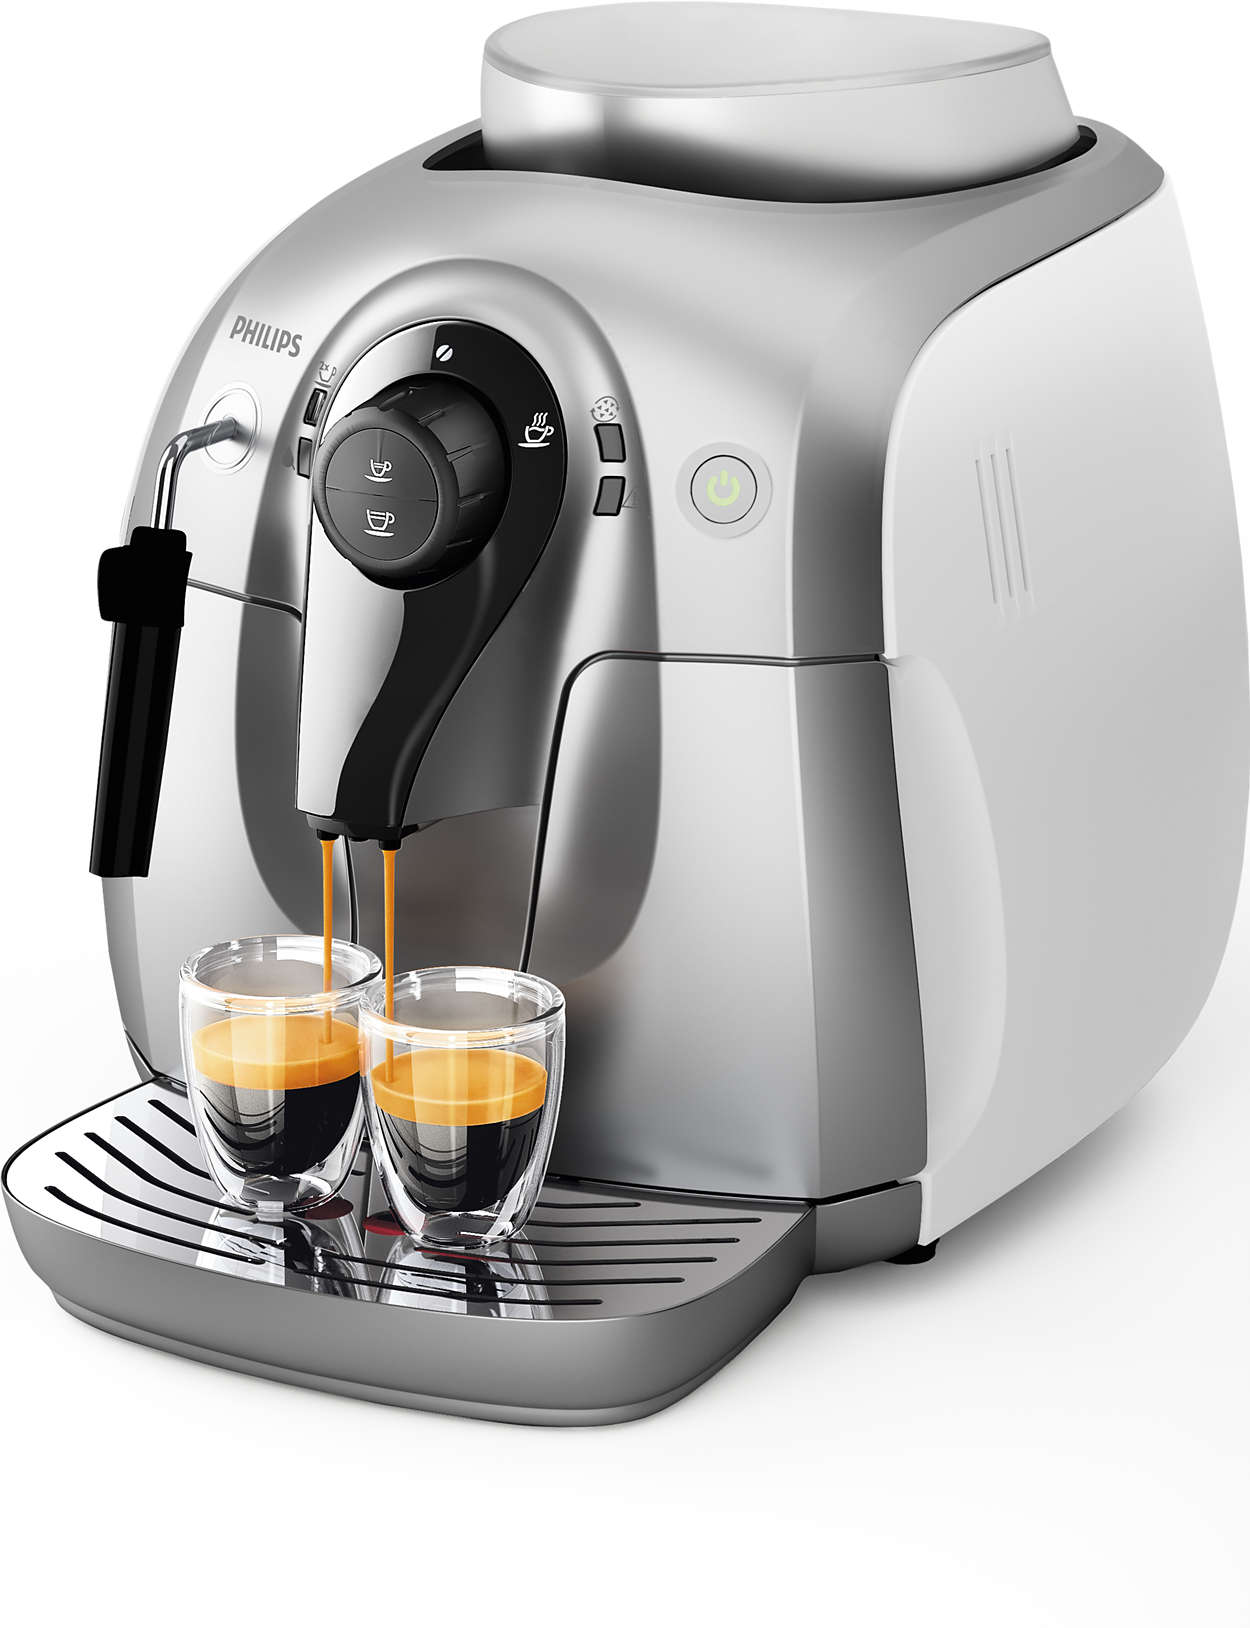 2000 series machine espresso super automatique hd8651 31 philips. Black Bedroom Furniture Sets. Home Design Ideas